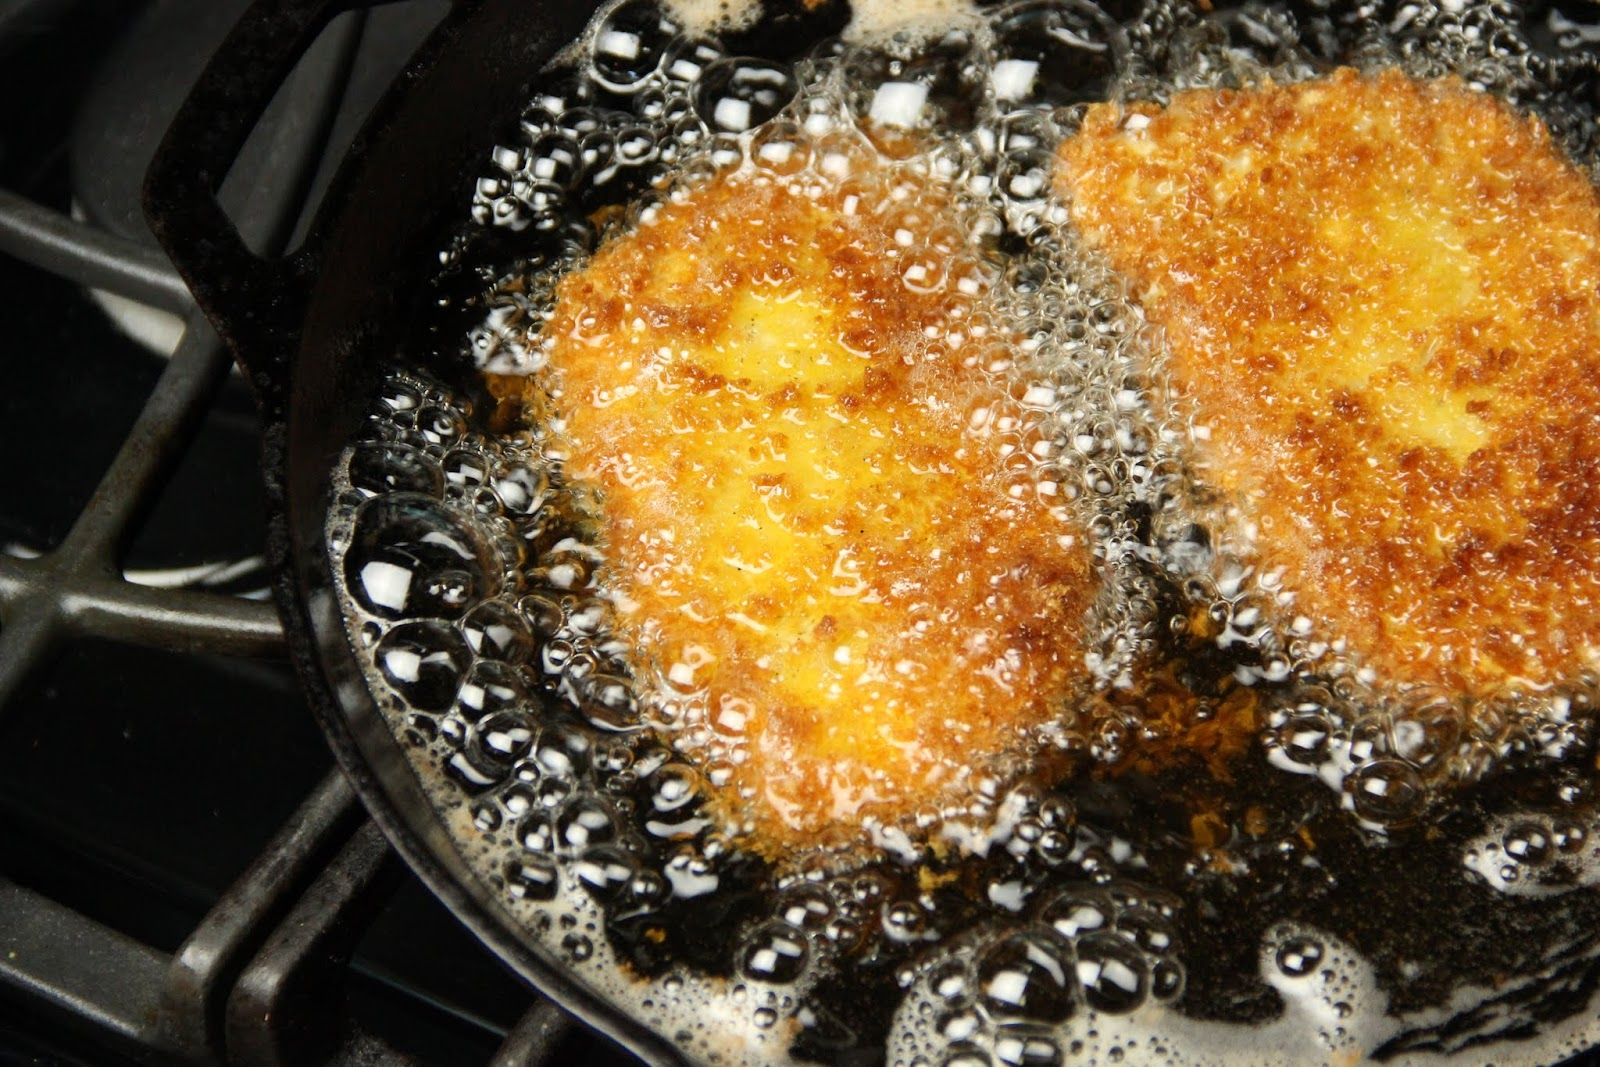 I Use The Very Thin Cut, Boneless Pork Chops So They Cook Quickly They Are  Breaded In A Typical Dredge Of Flour, Egg And